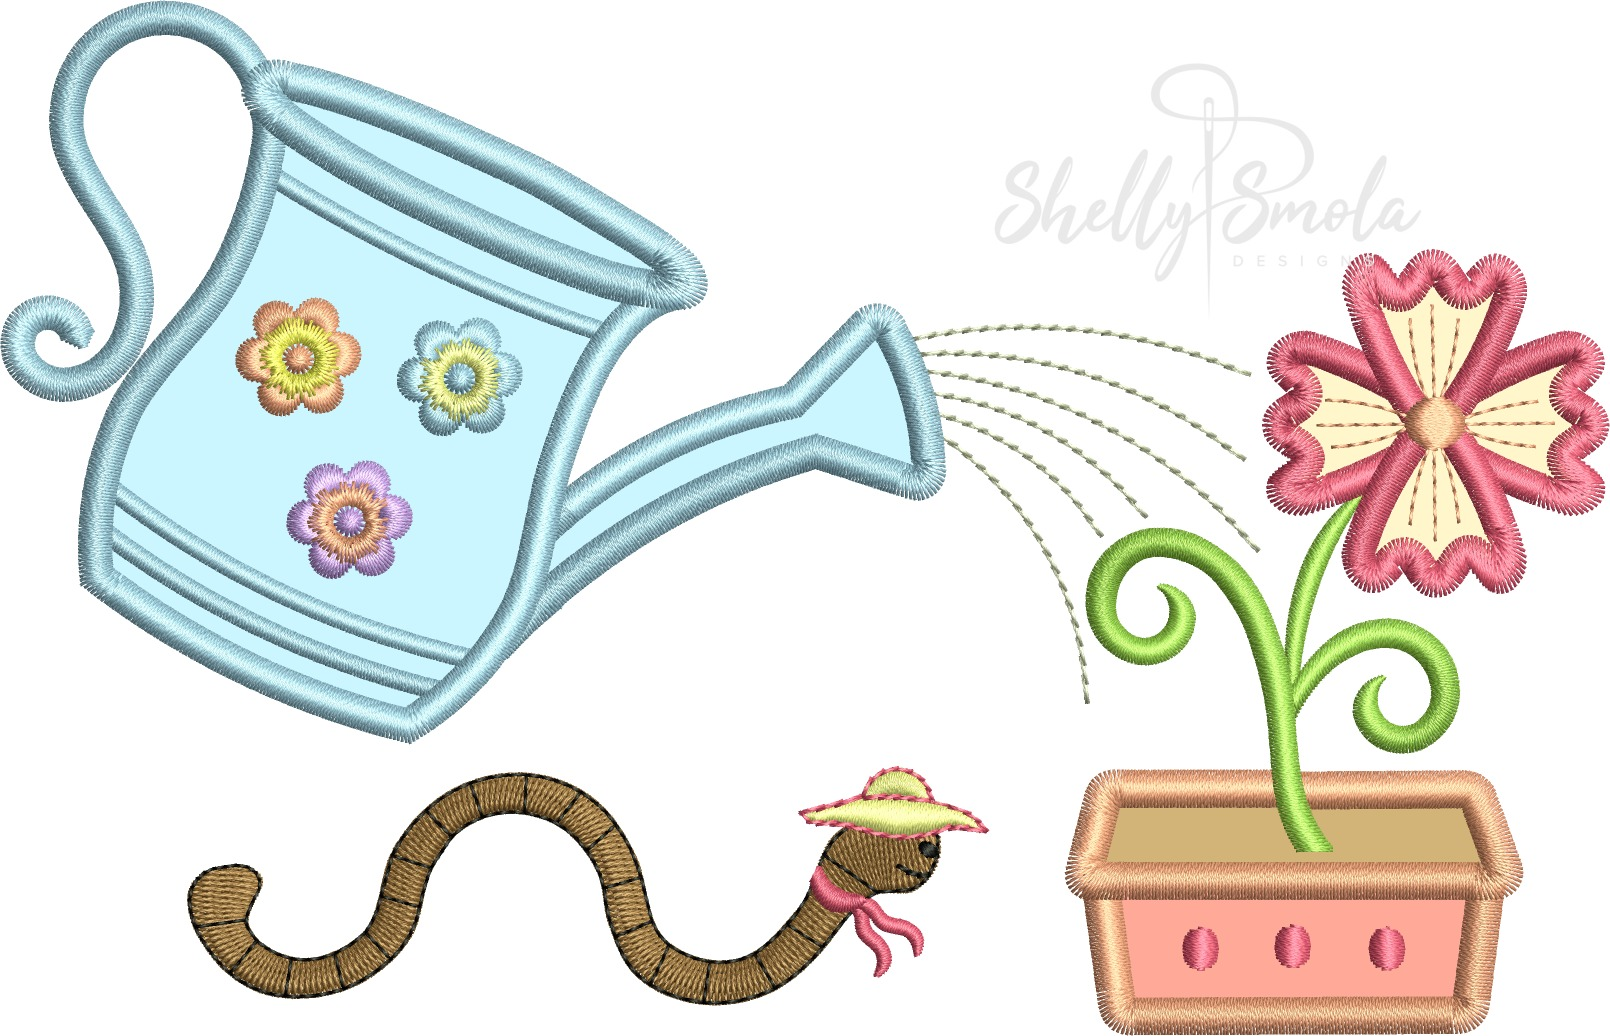 Watering Flowers by Shelly Smola